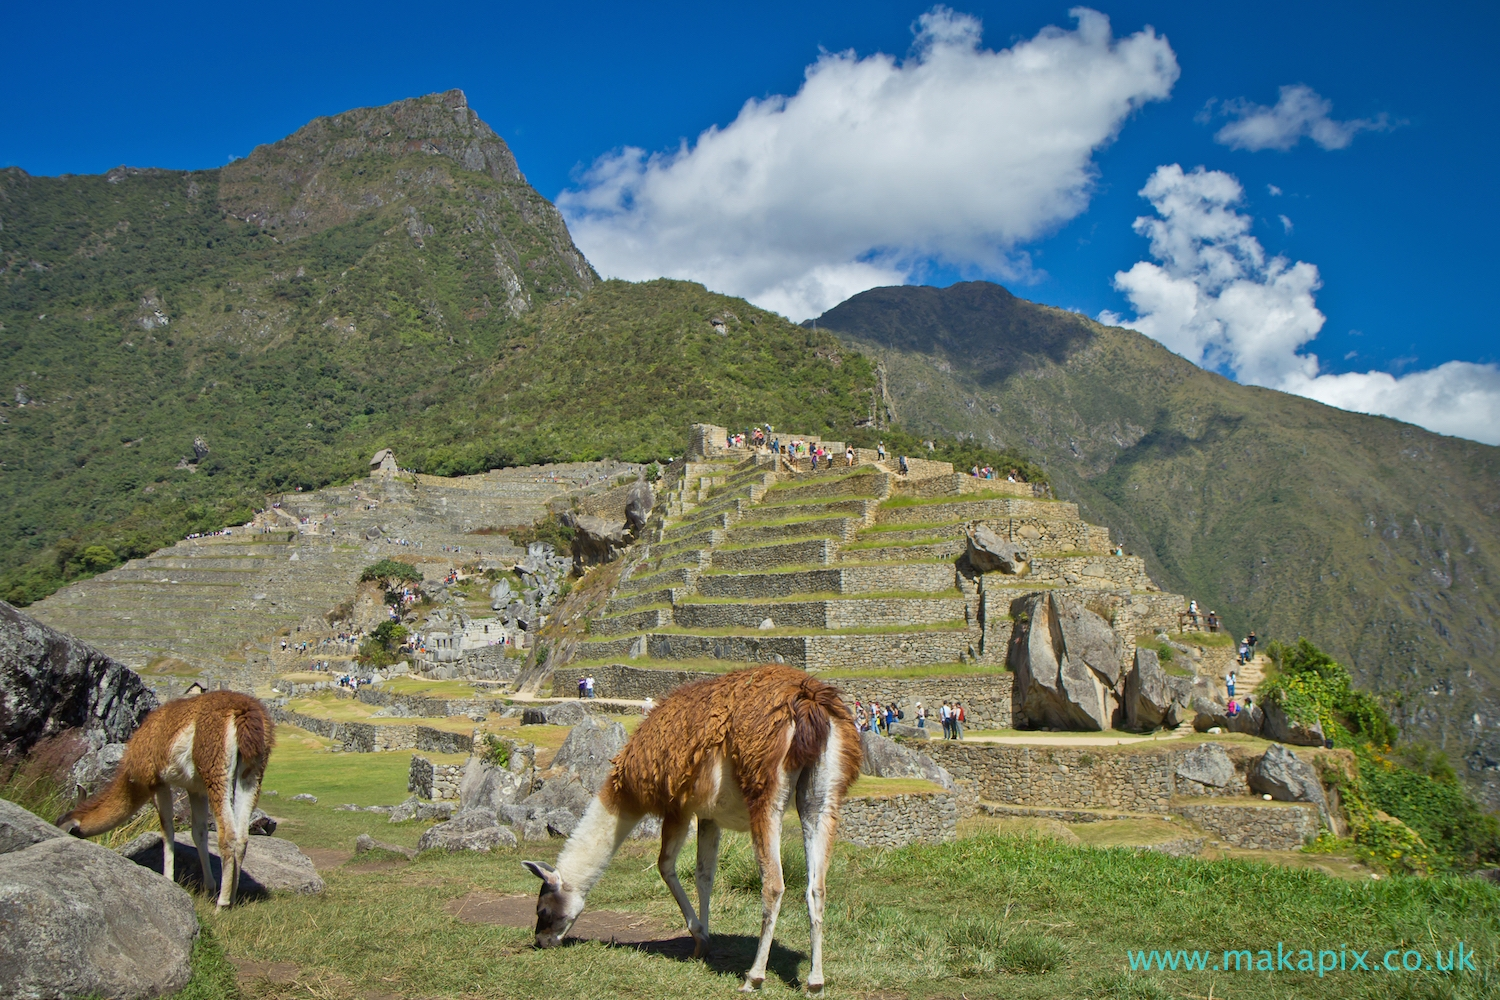 Machu Picchu Ruins and Lamas